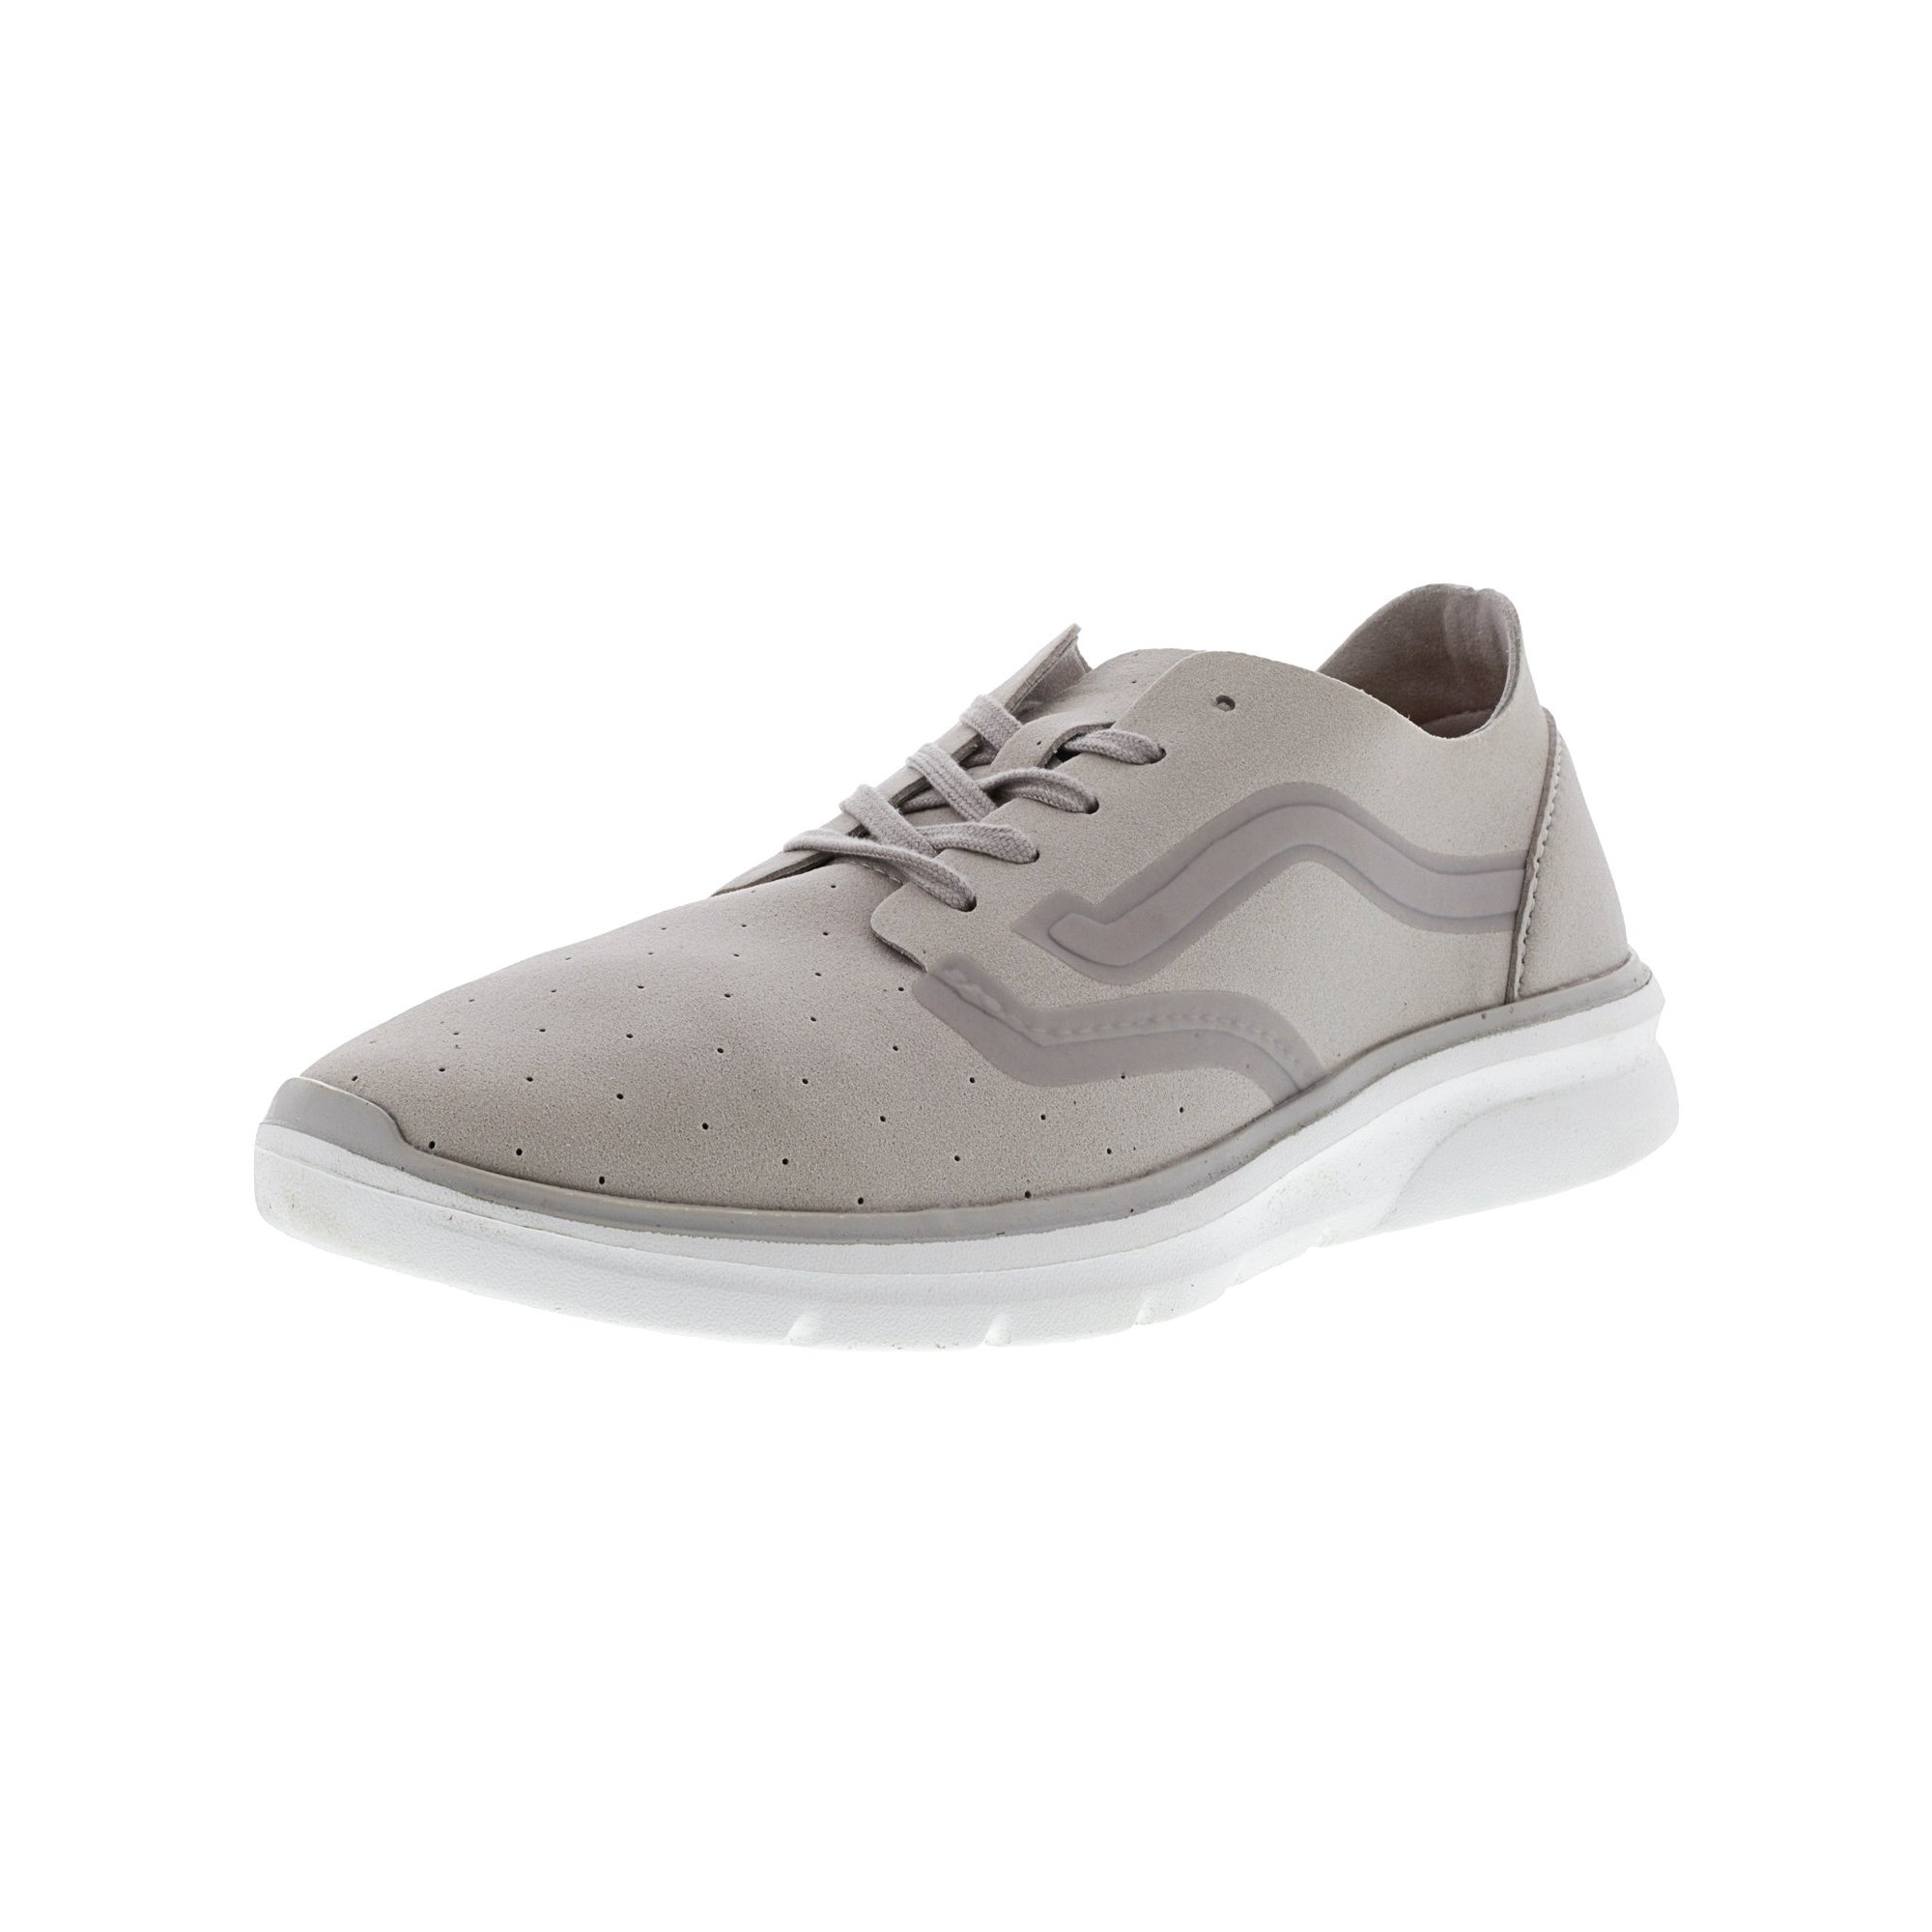 Vans Iso 2 Rapidweld Perforated Delicacy   White Ankle-High Skateboarding  Shoe - 9M 7.5M  550bba98f